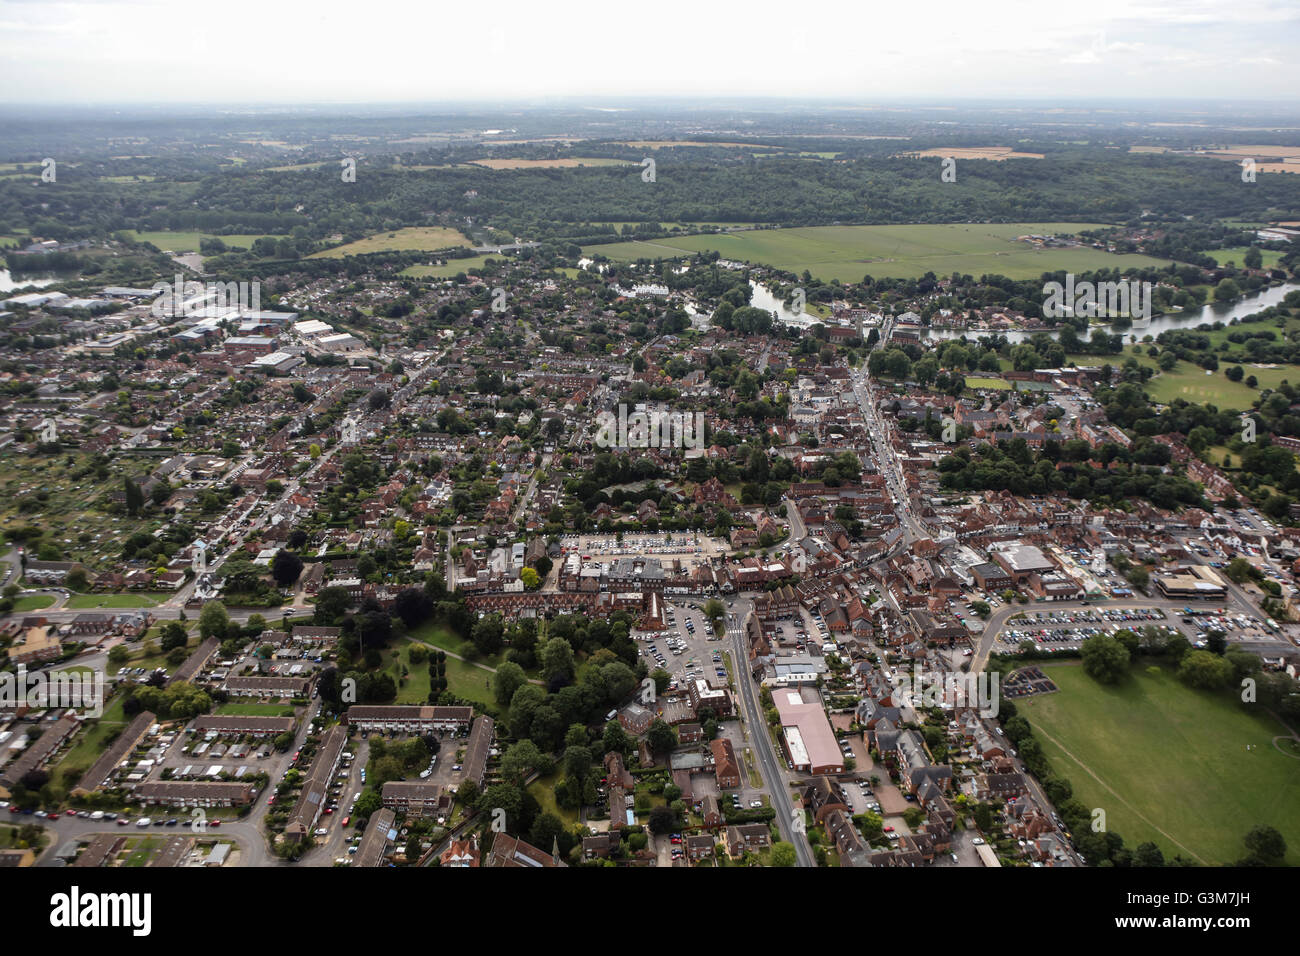 An aerial view of Marlow, Buckinghamshire Stock Photo